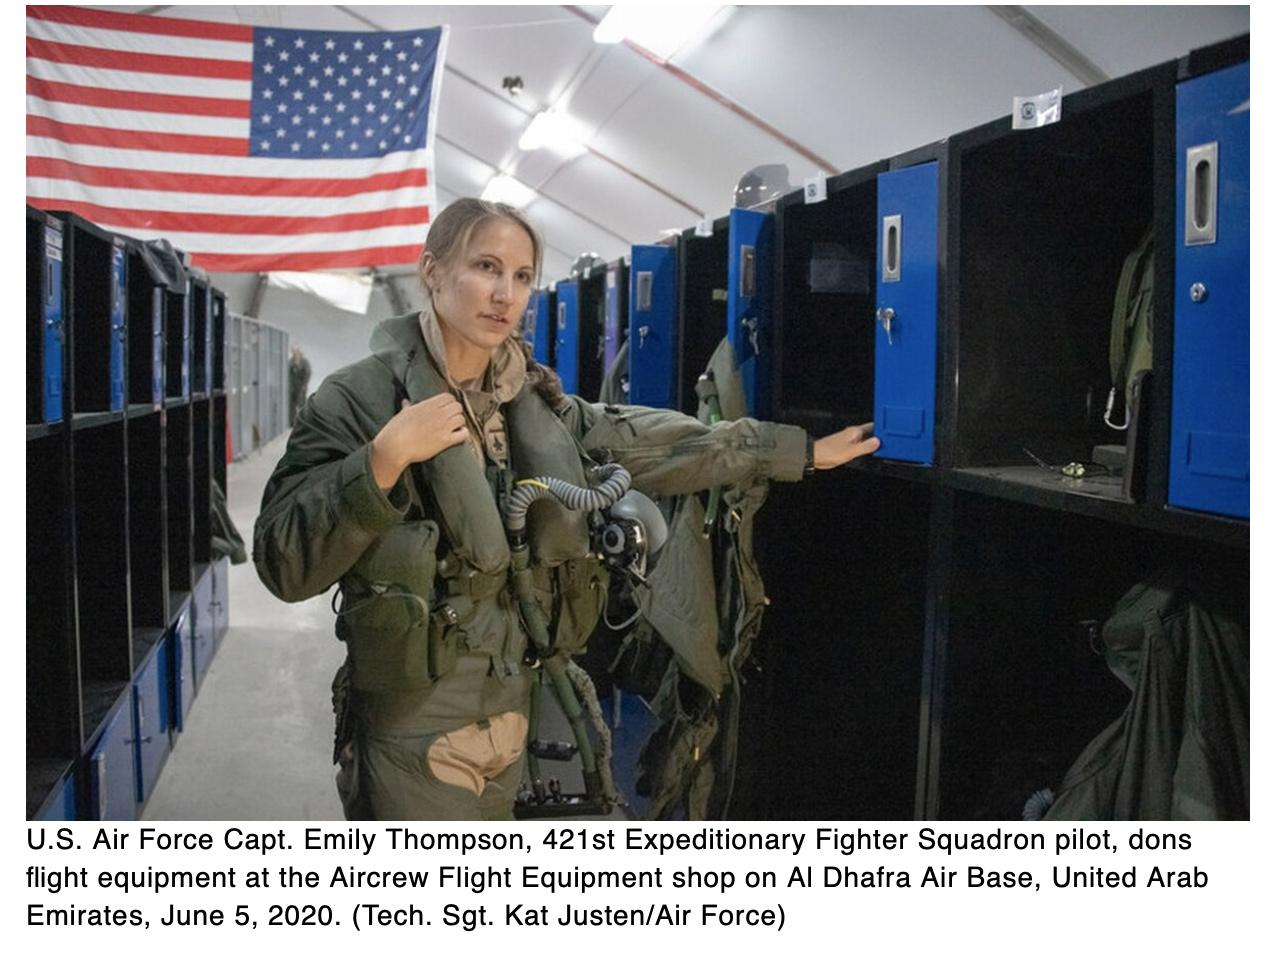 This Air Force pilot is the first woman to fly the F-35 in combat